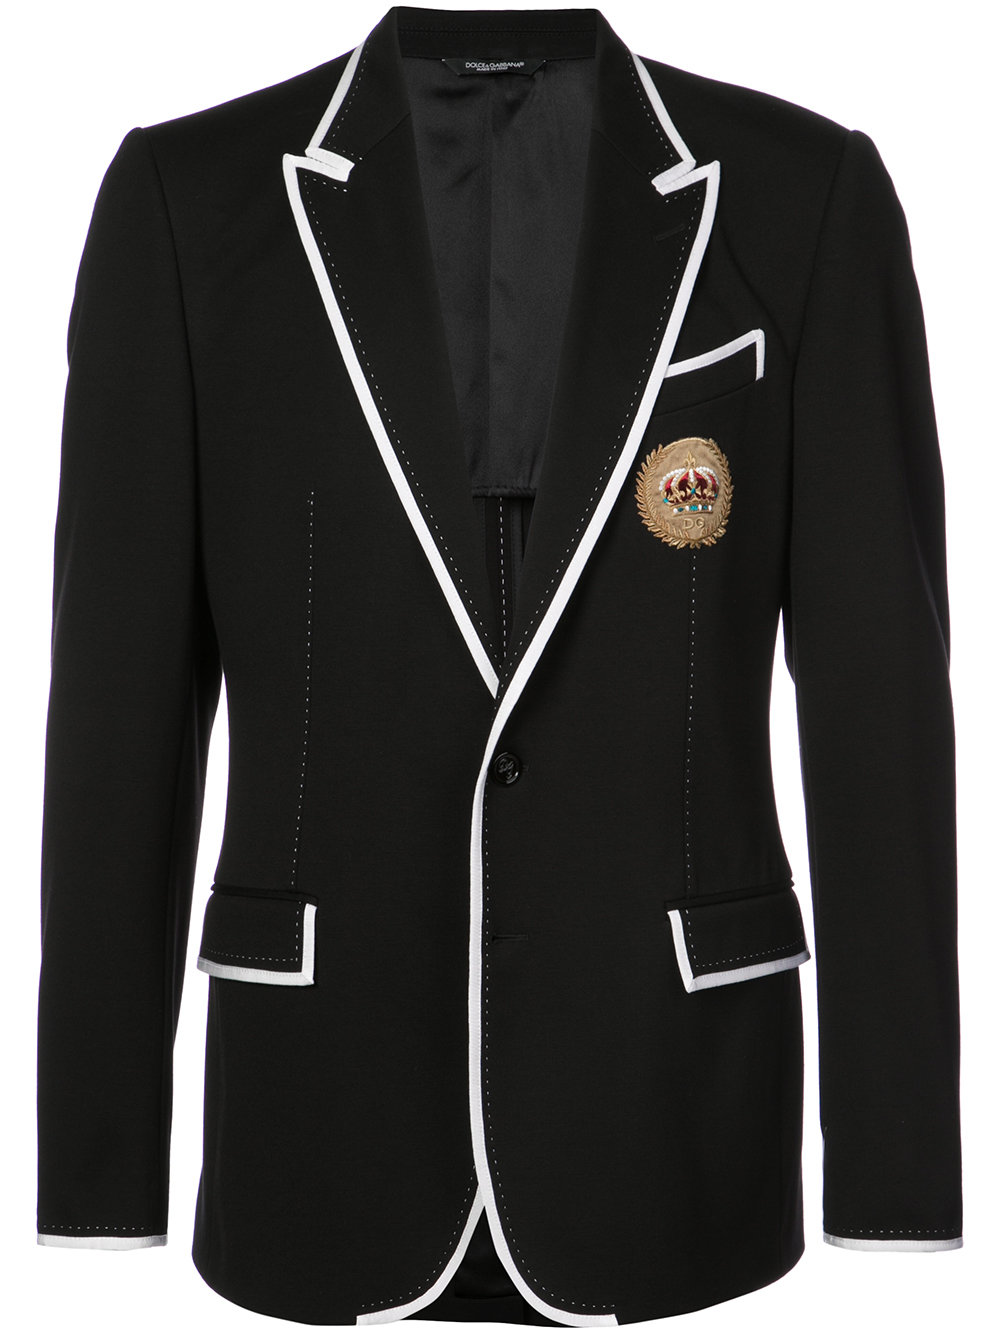 Dolce & Gabbana   Black Blazer With Contrasting Piping